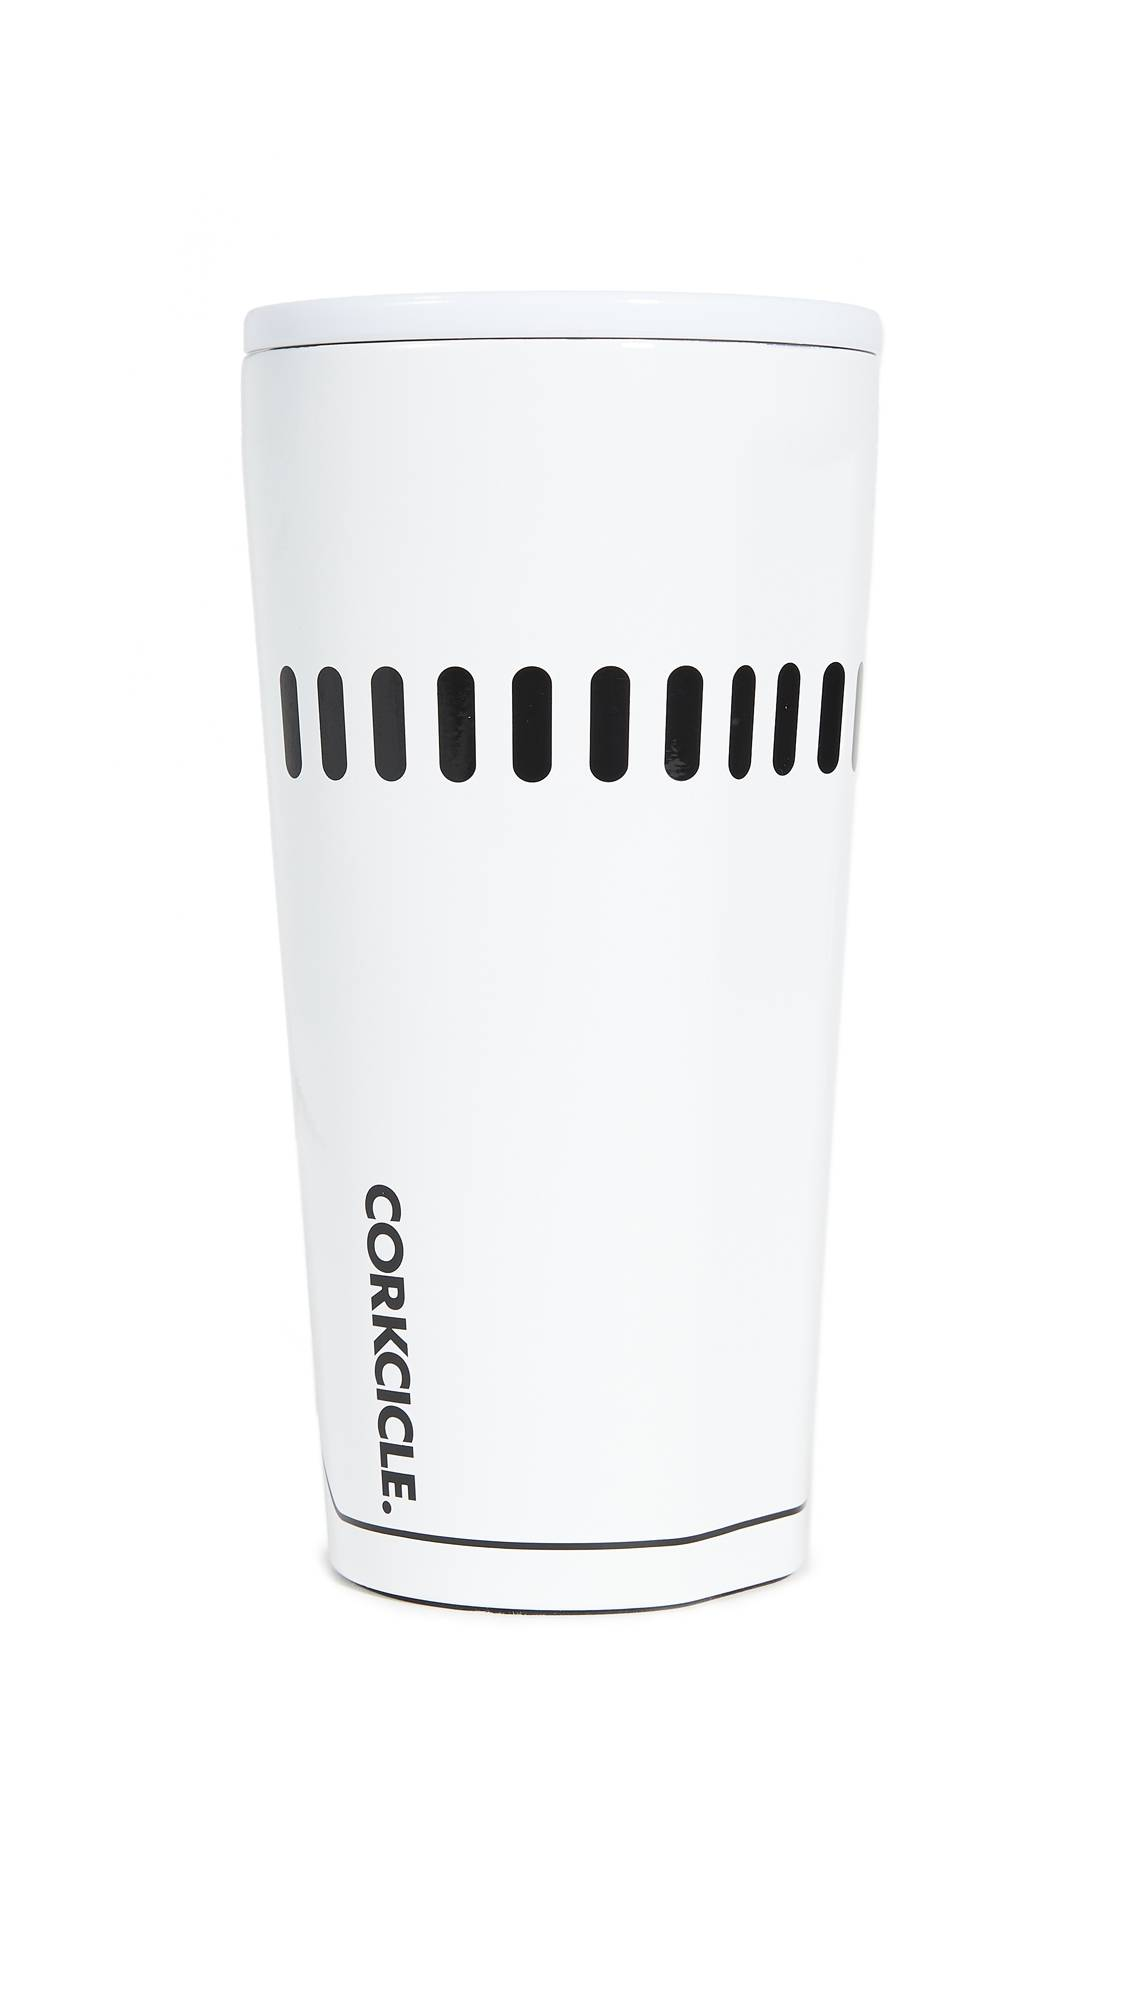 Corkcicle 16oz Tumbler Star Wars Storm Trooper - White - Size: One Size